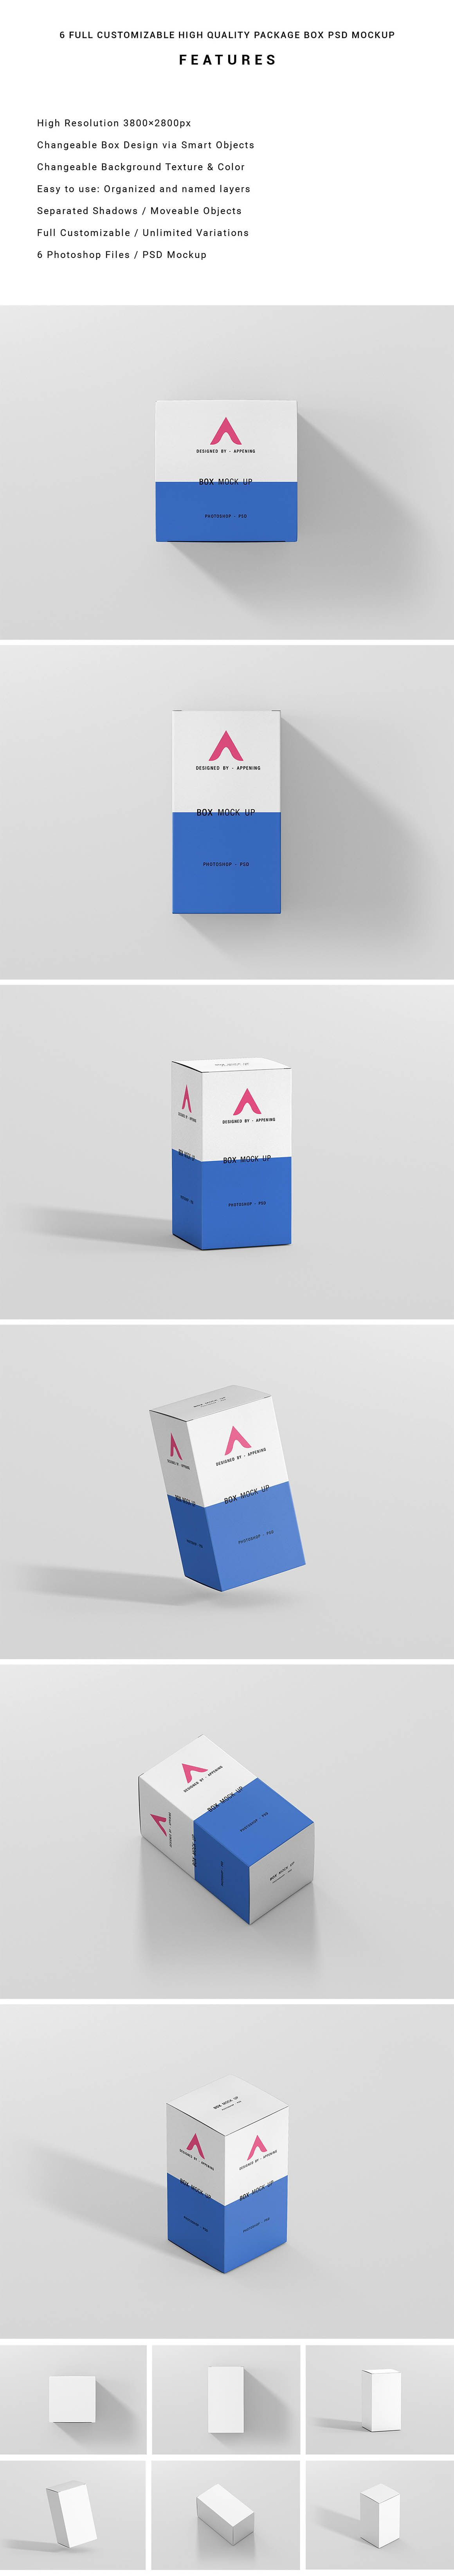 Download Free Rectangle Box Mockup Dealjumbo Com Discounted Design Bundles With Extended License Box Mockup Psd Mockup Template Mockup Template